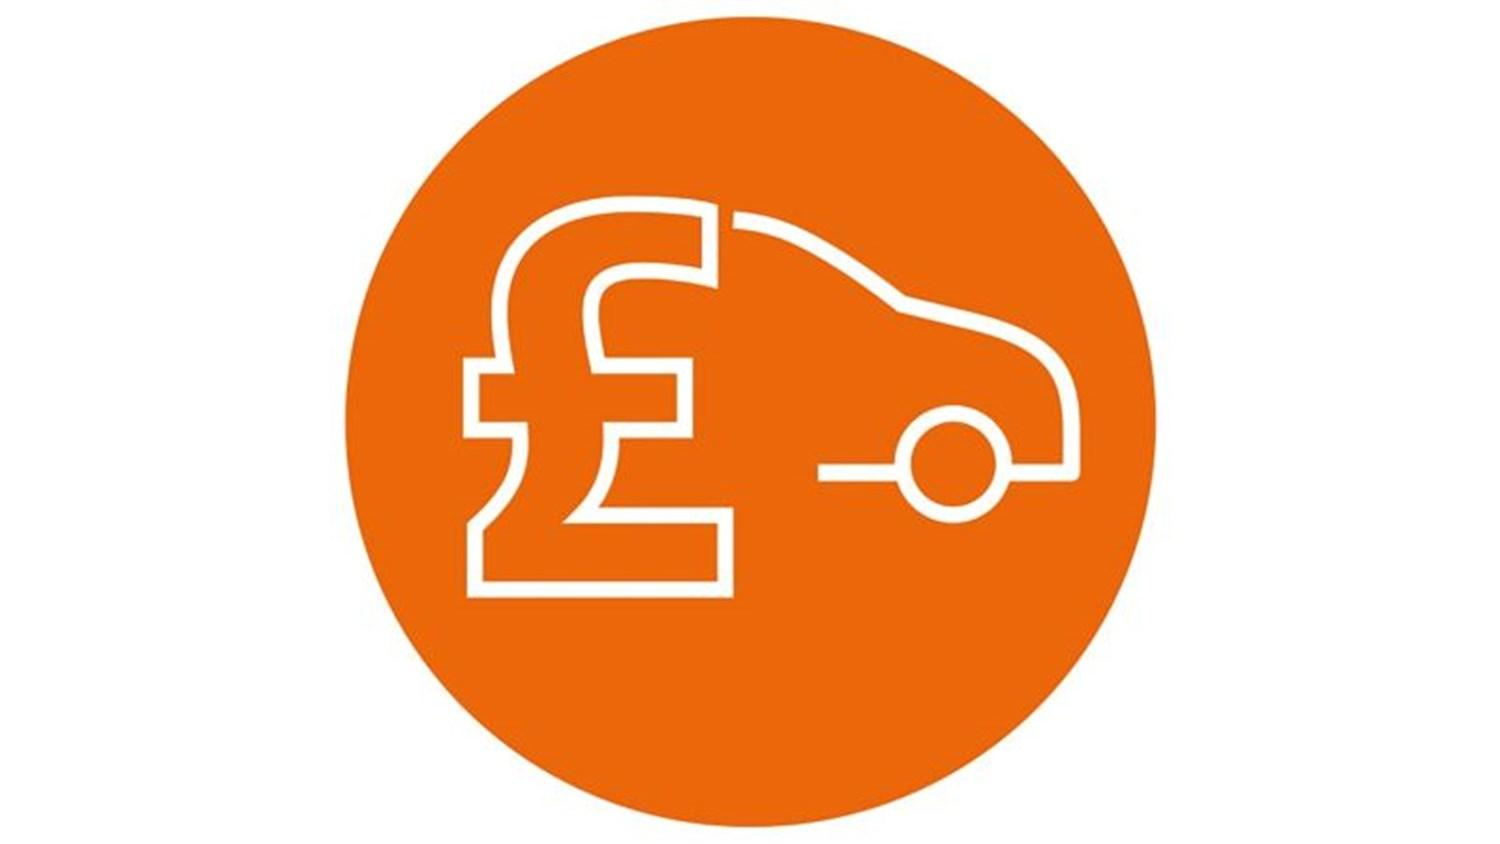 Orange circle with white icon of a car and a pound sign